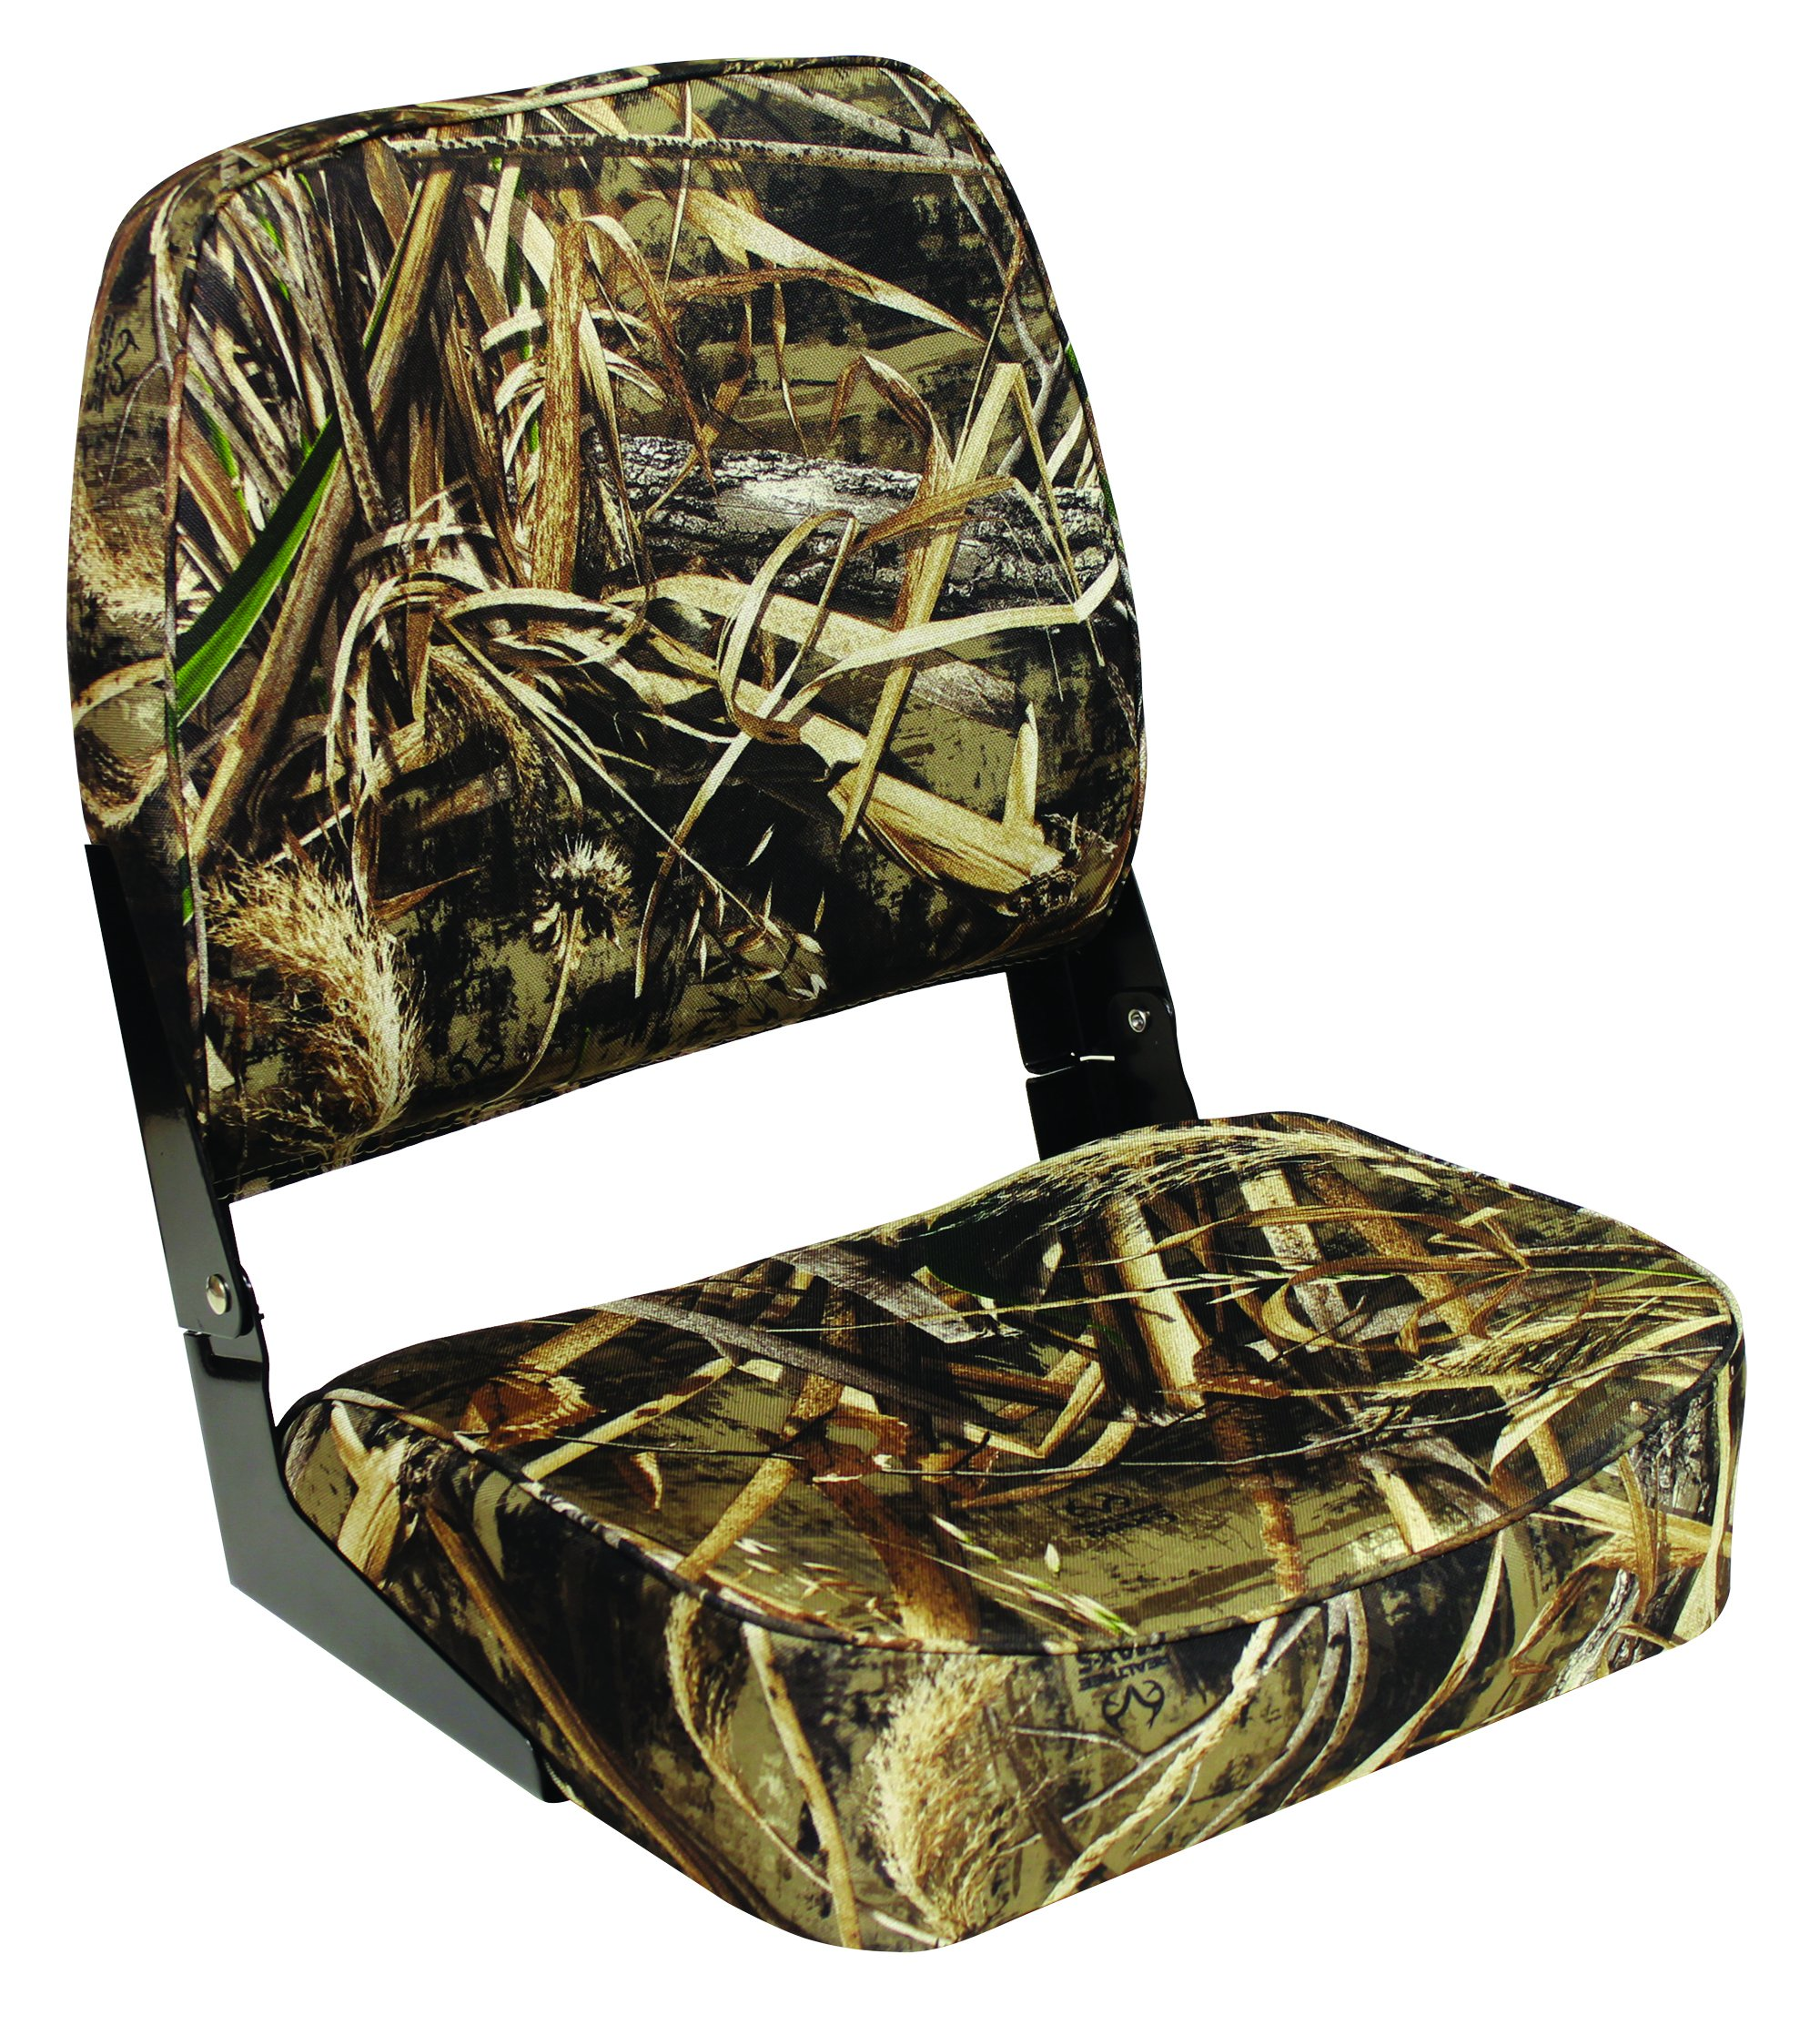 Wise Super Value Series Folding Boat Seat, Realtree Max 5 Camo by Wise Company